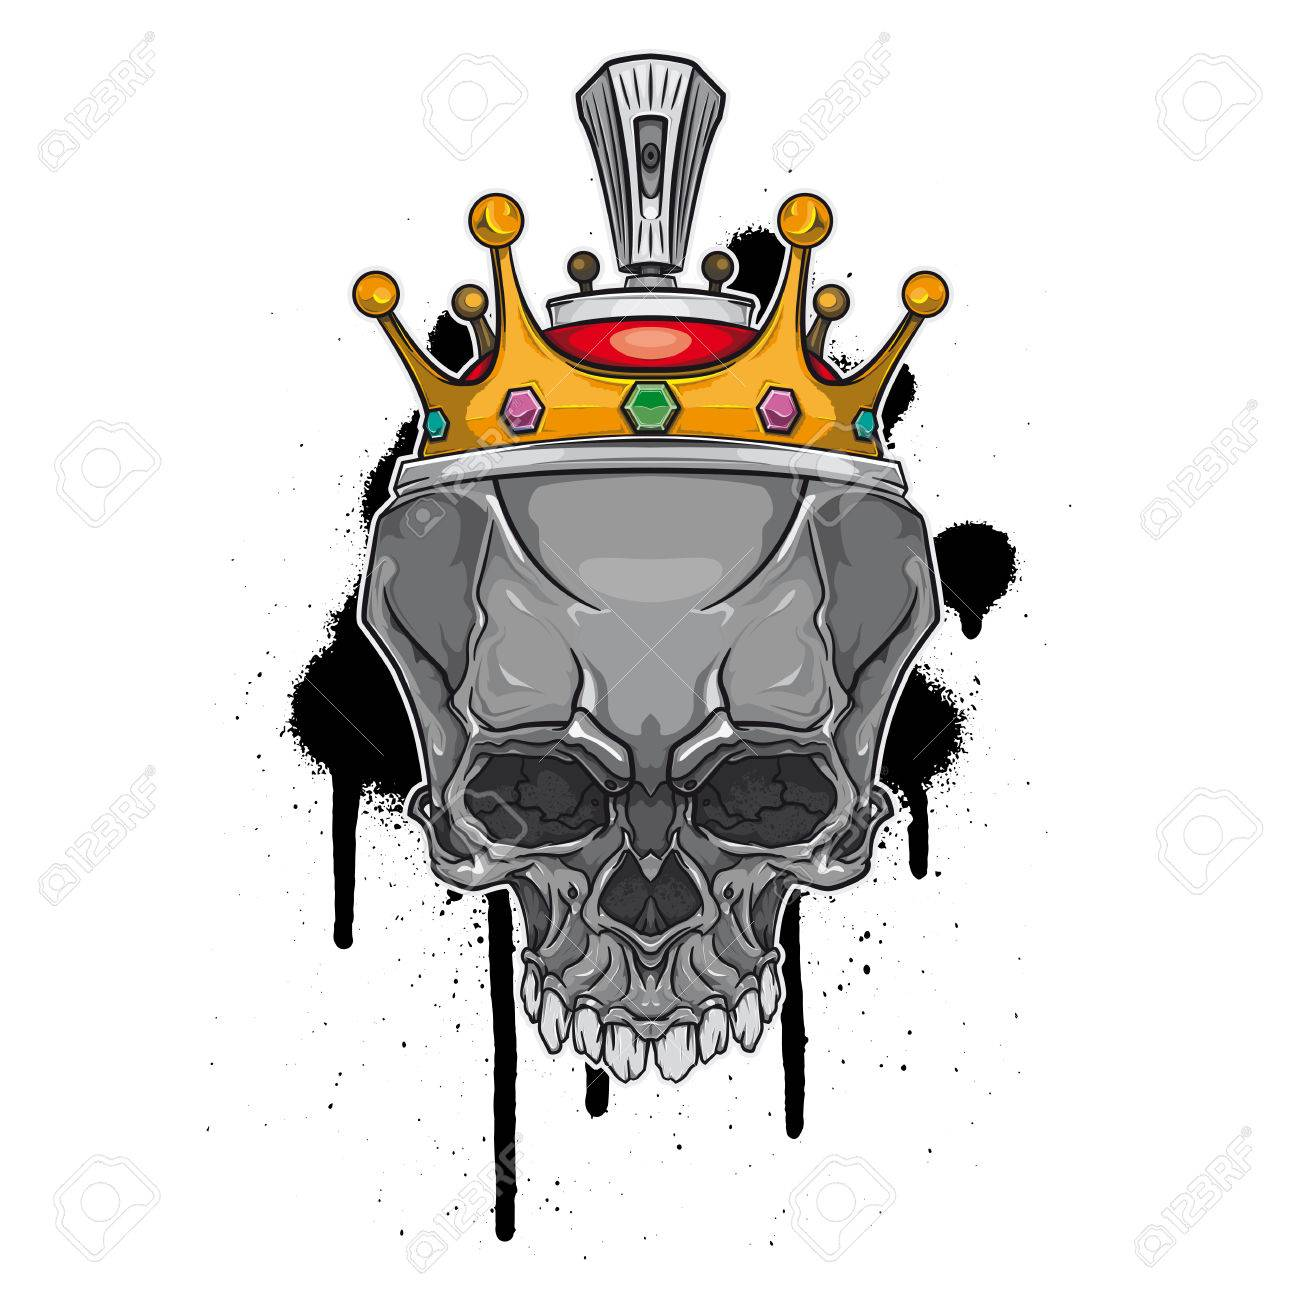 Skull With Crown On Graffiti